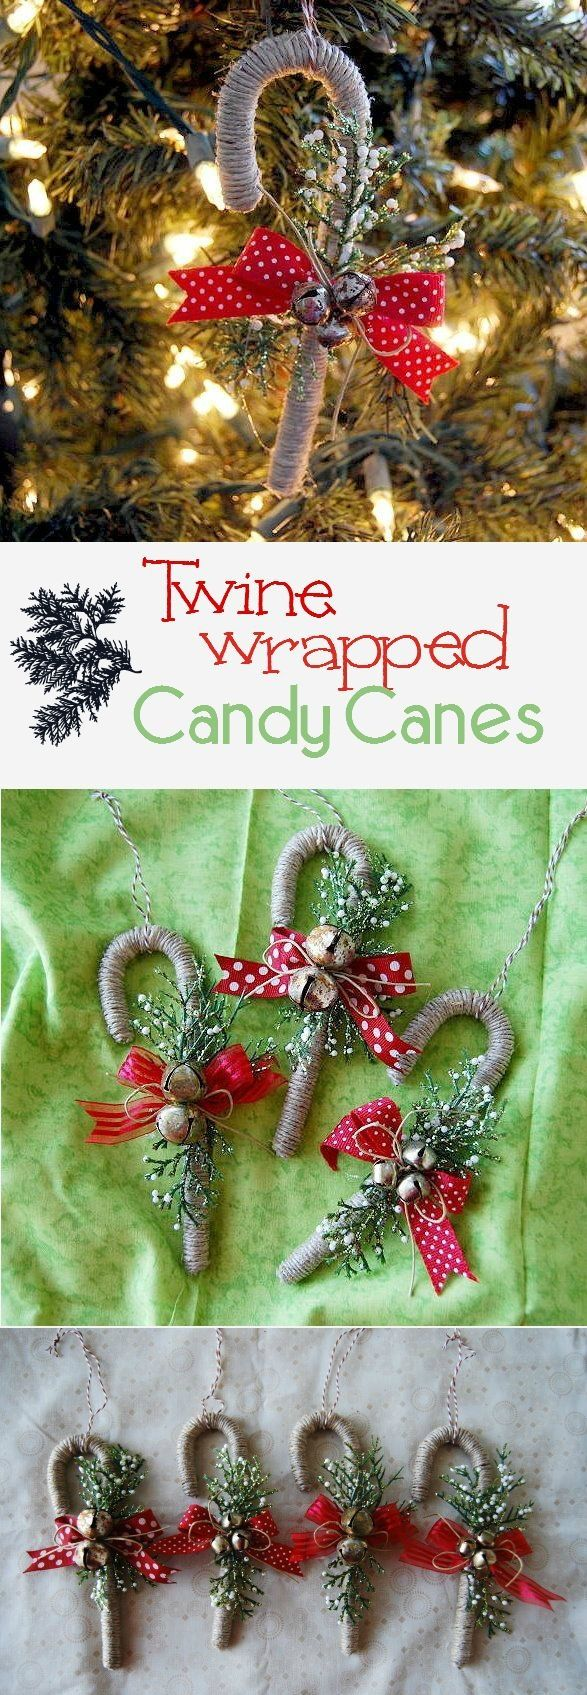 www.creativemeinspiredyou.com Twine wrapped canes are simply beautiful little bits of Christmas, inspired by country home and folksy decor, you can add or leave off sparkle to make these fast and fun canes. Holiday, Christmas, decor, holiday decor, candy canes, christmas tree, ornaments, holiday ornaments, kids crafts, kids, crafts, diy, handmade, homemade, quick crafts, what to do with cheap candy canes, candy cane decor, folk art, folksy, country decor, country christmas by cornelia